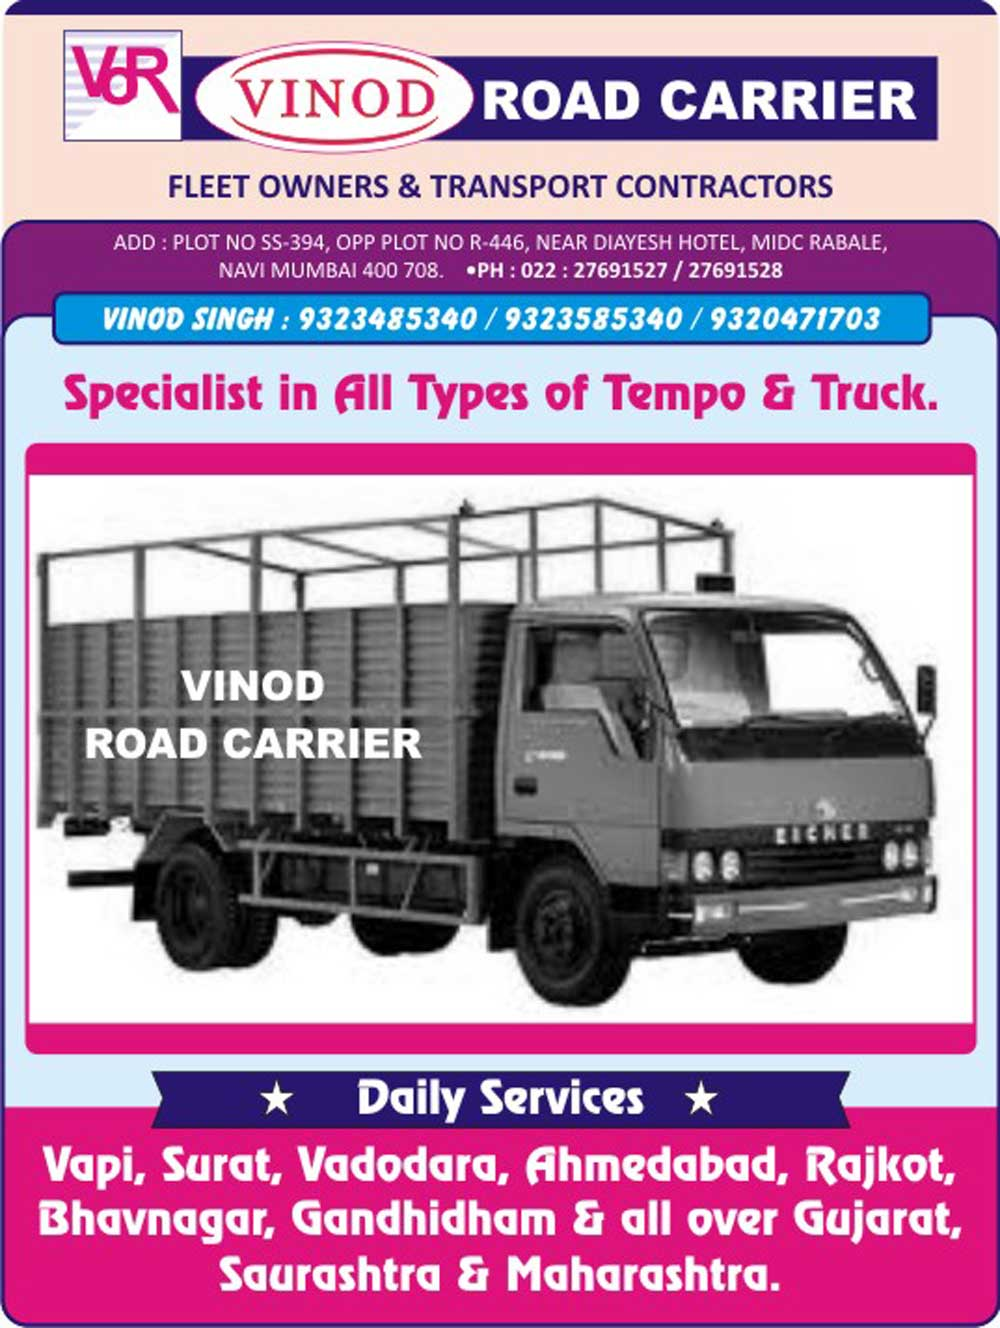 Vinod Road Carrier